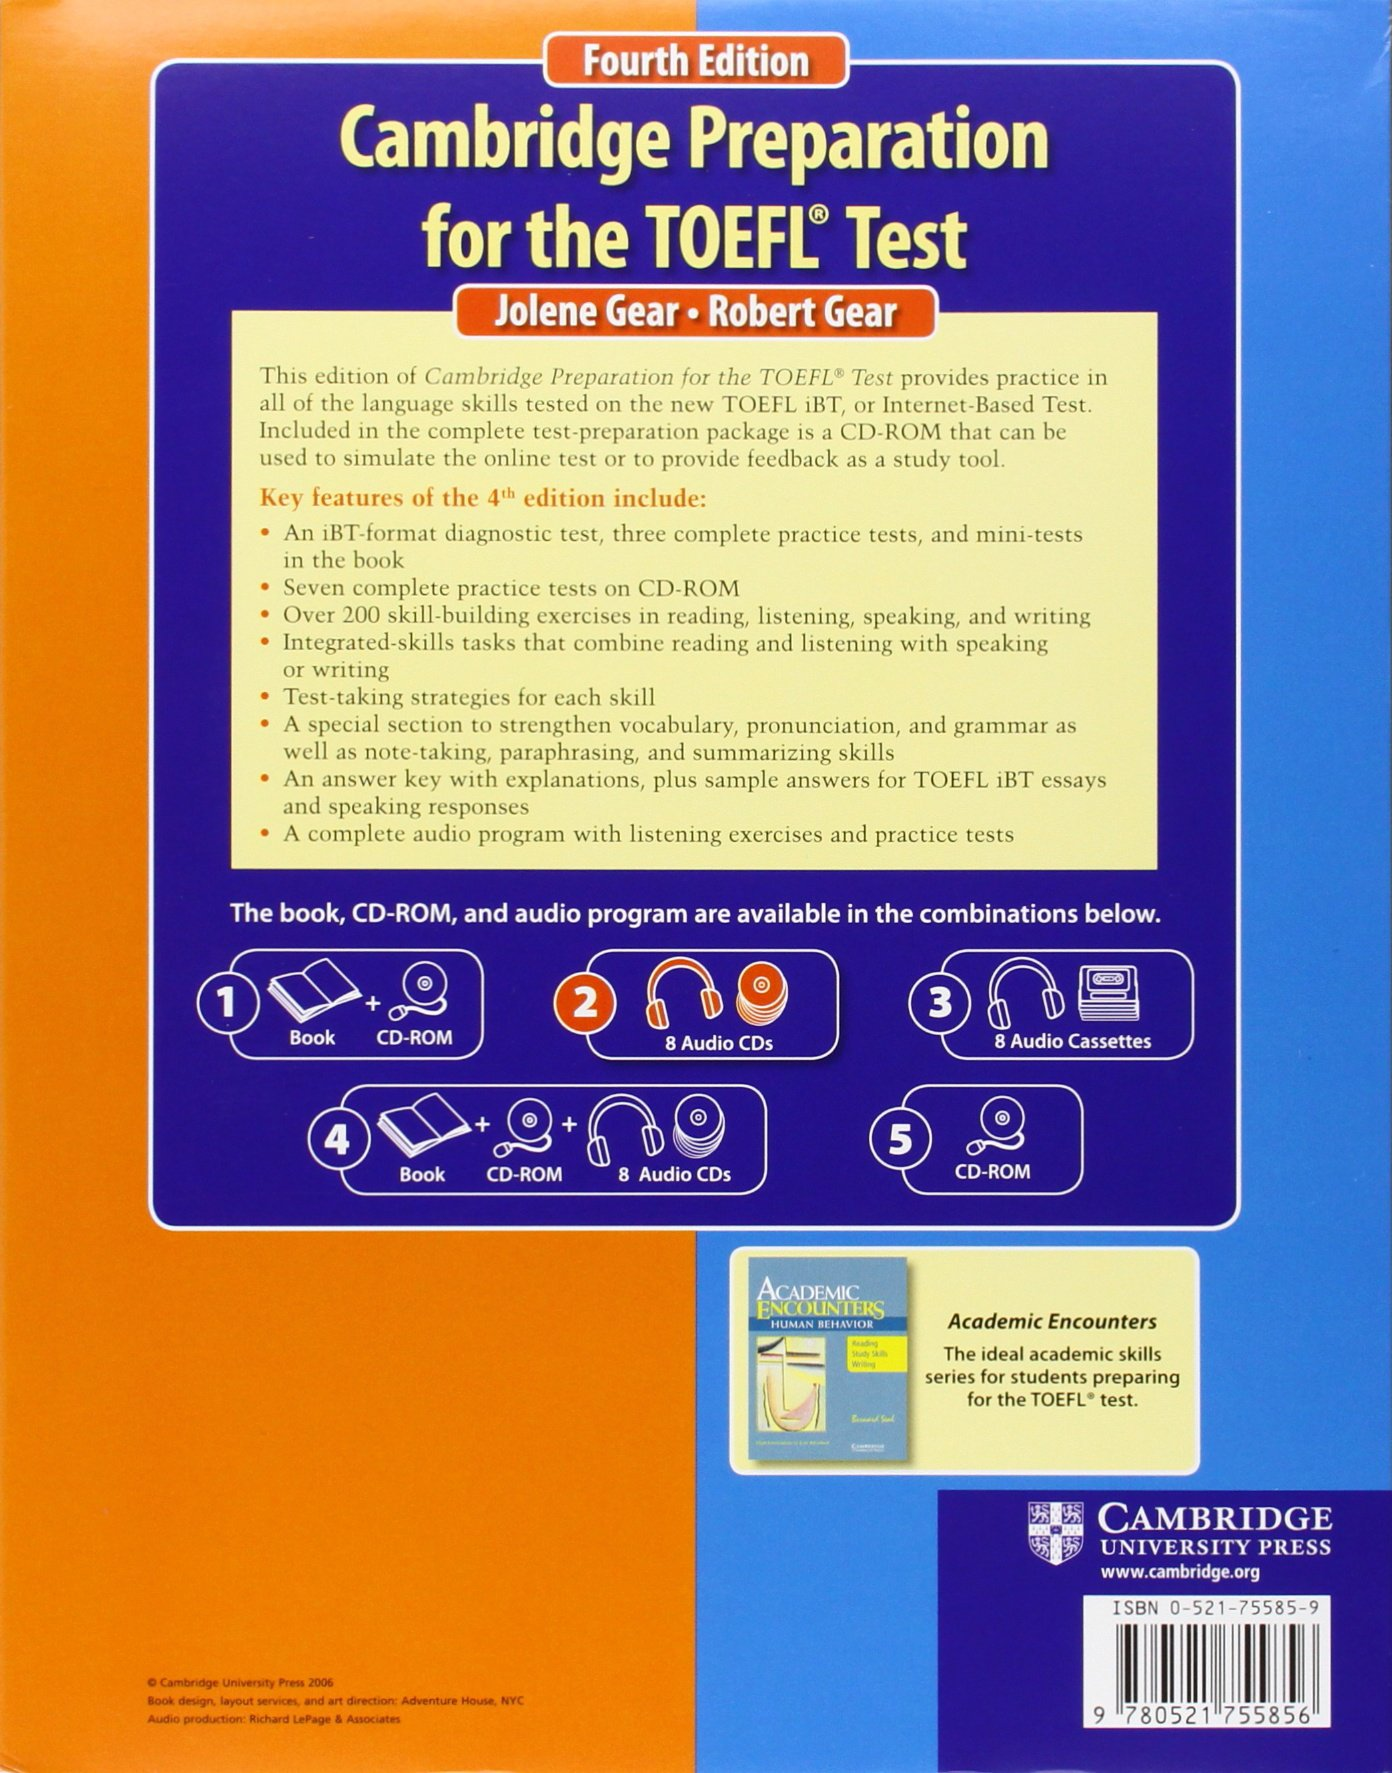 Cambridge Preparation for the TOEFL® Test Audio CDs (8) (Cambridge Preparation for the TOEFL Test)